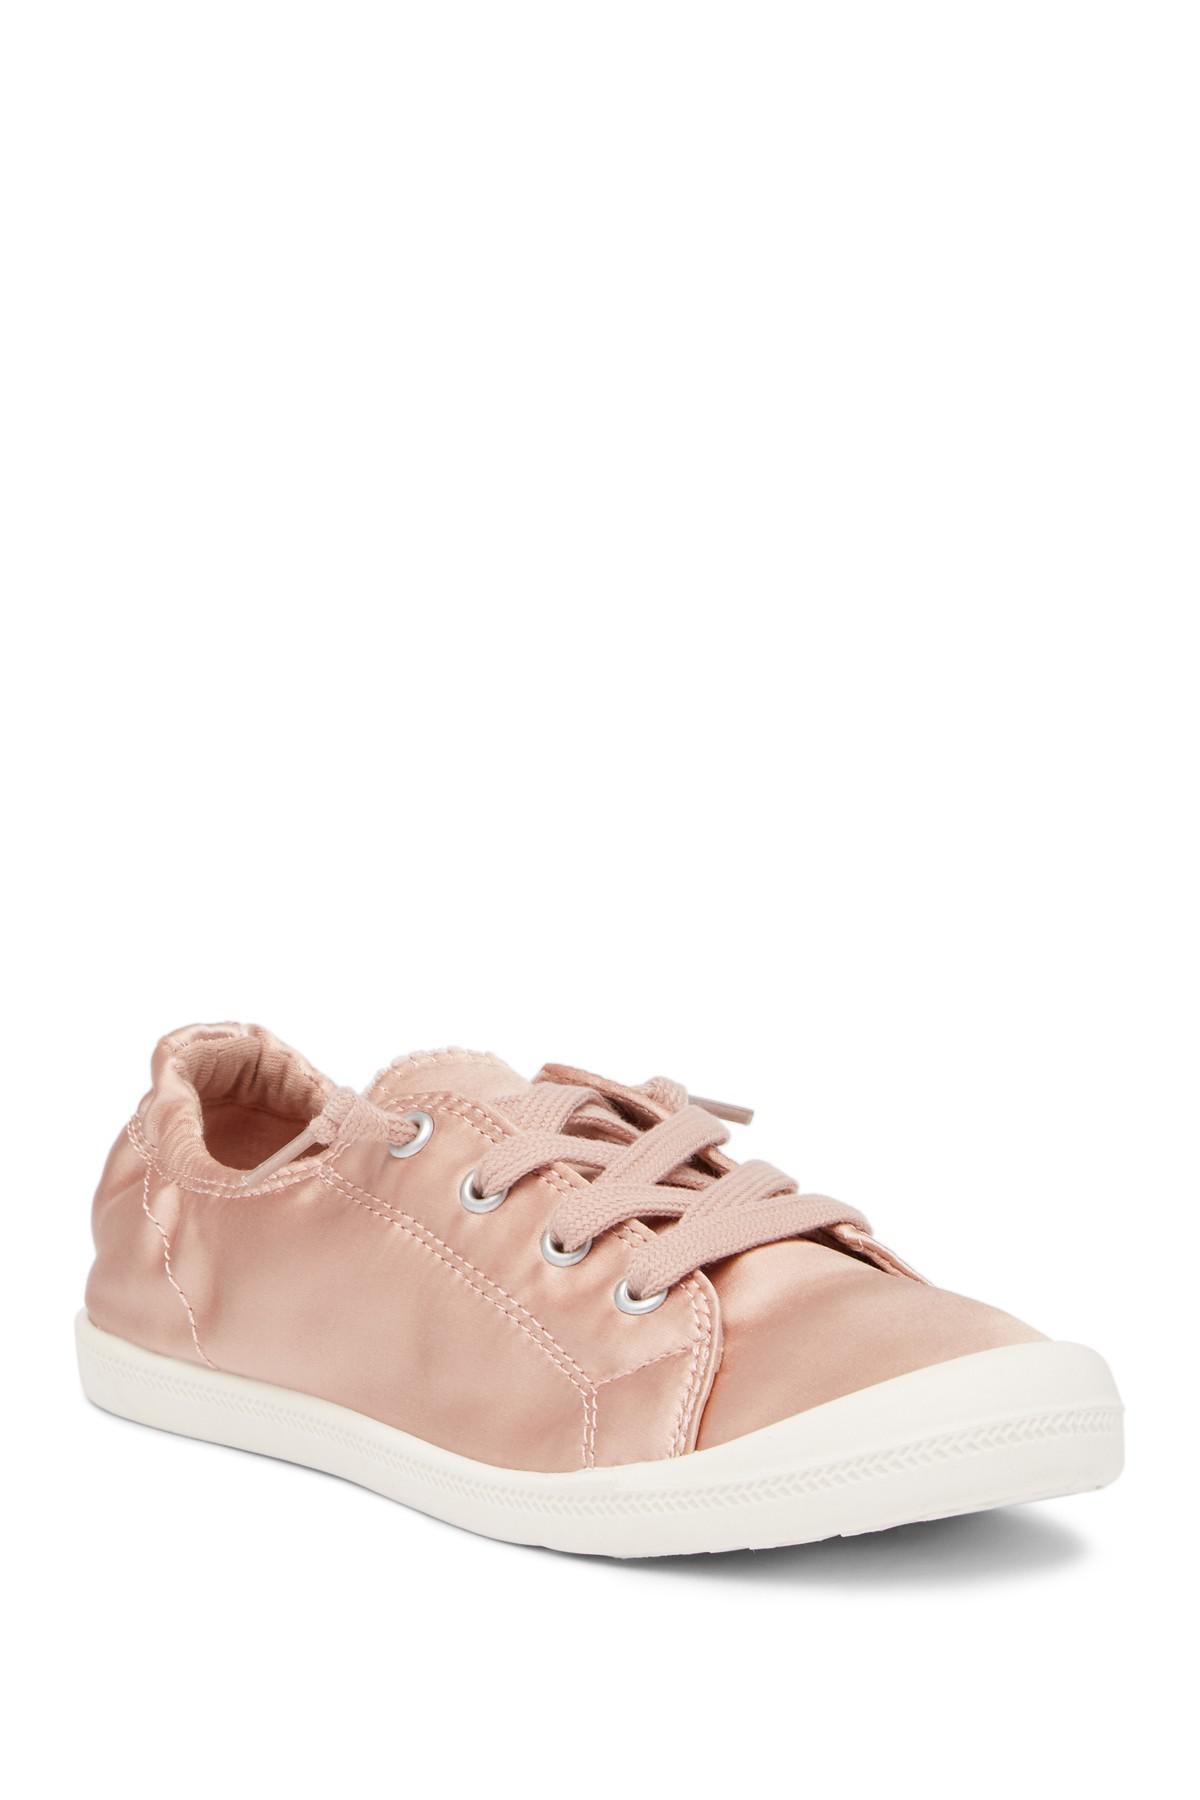 Madden Girl Barby Lace-up Sneaker in lt